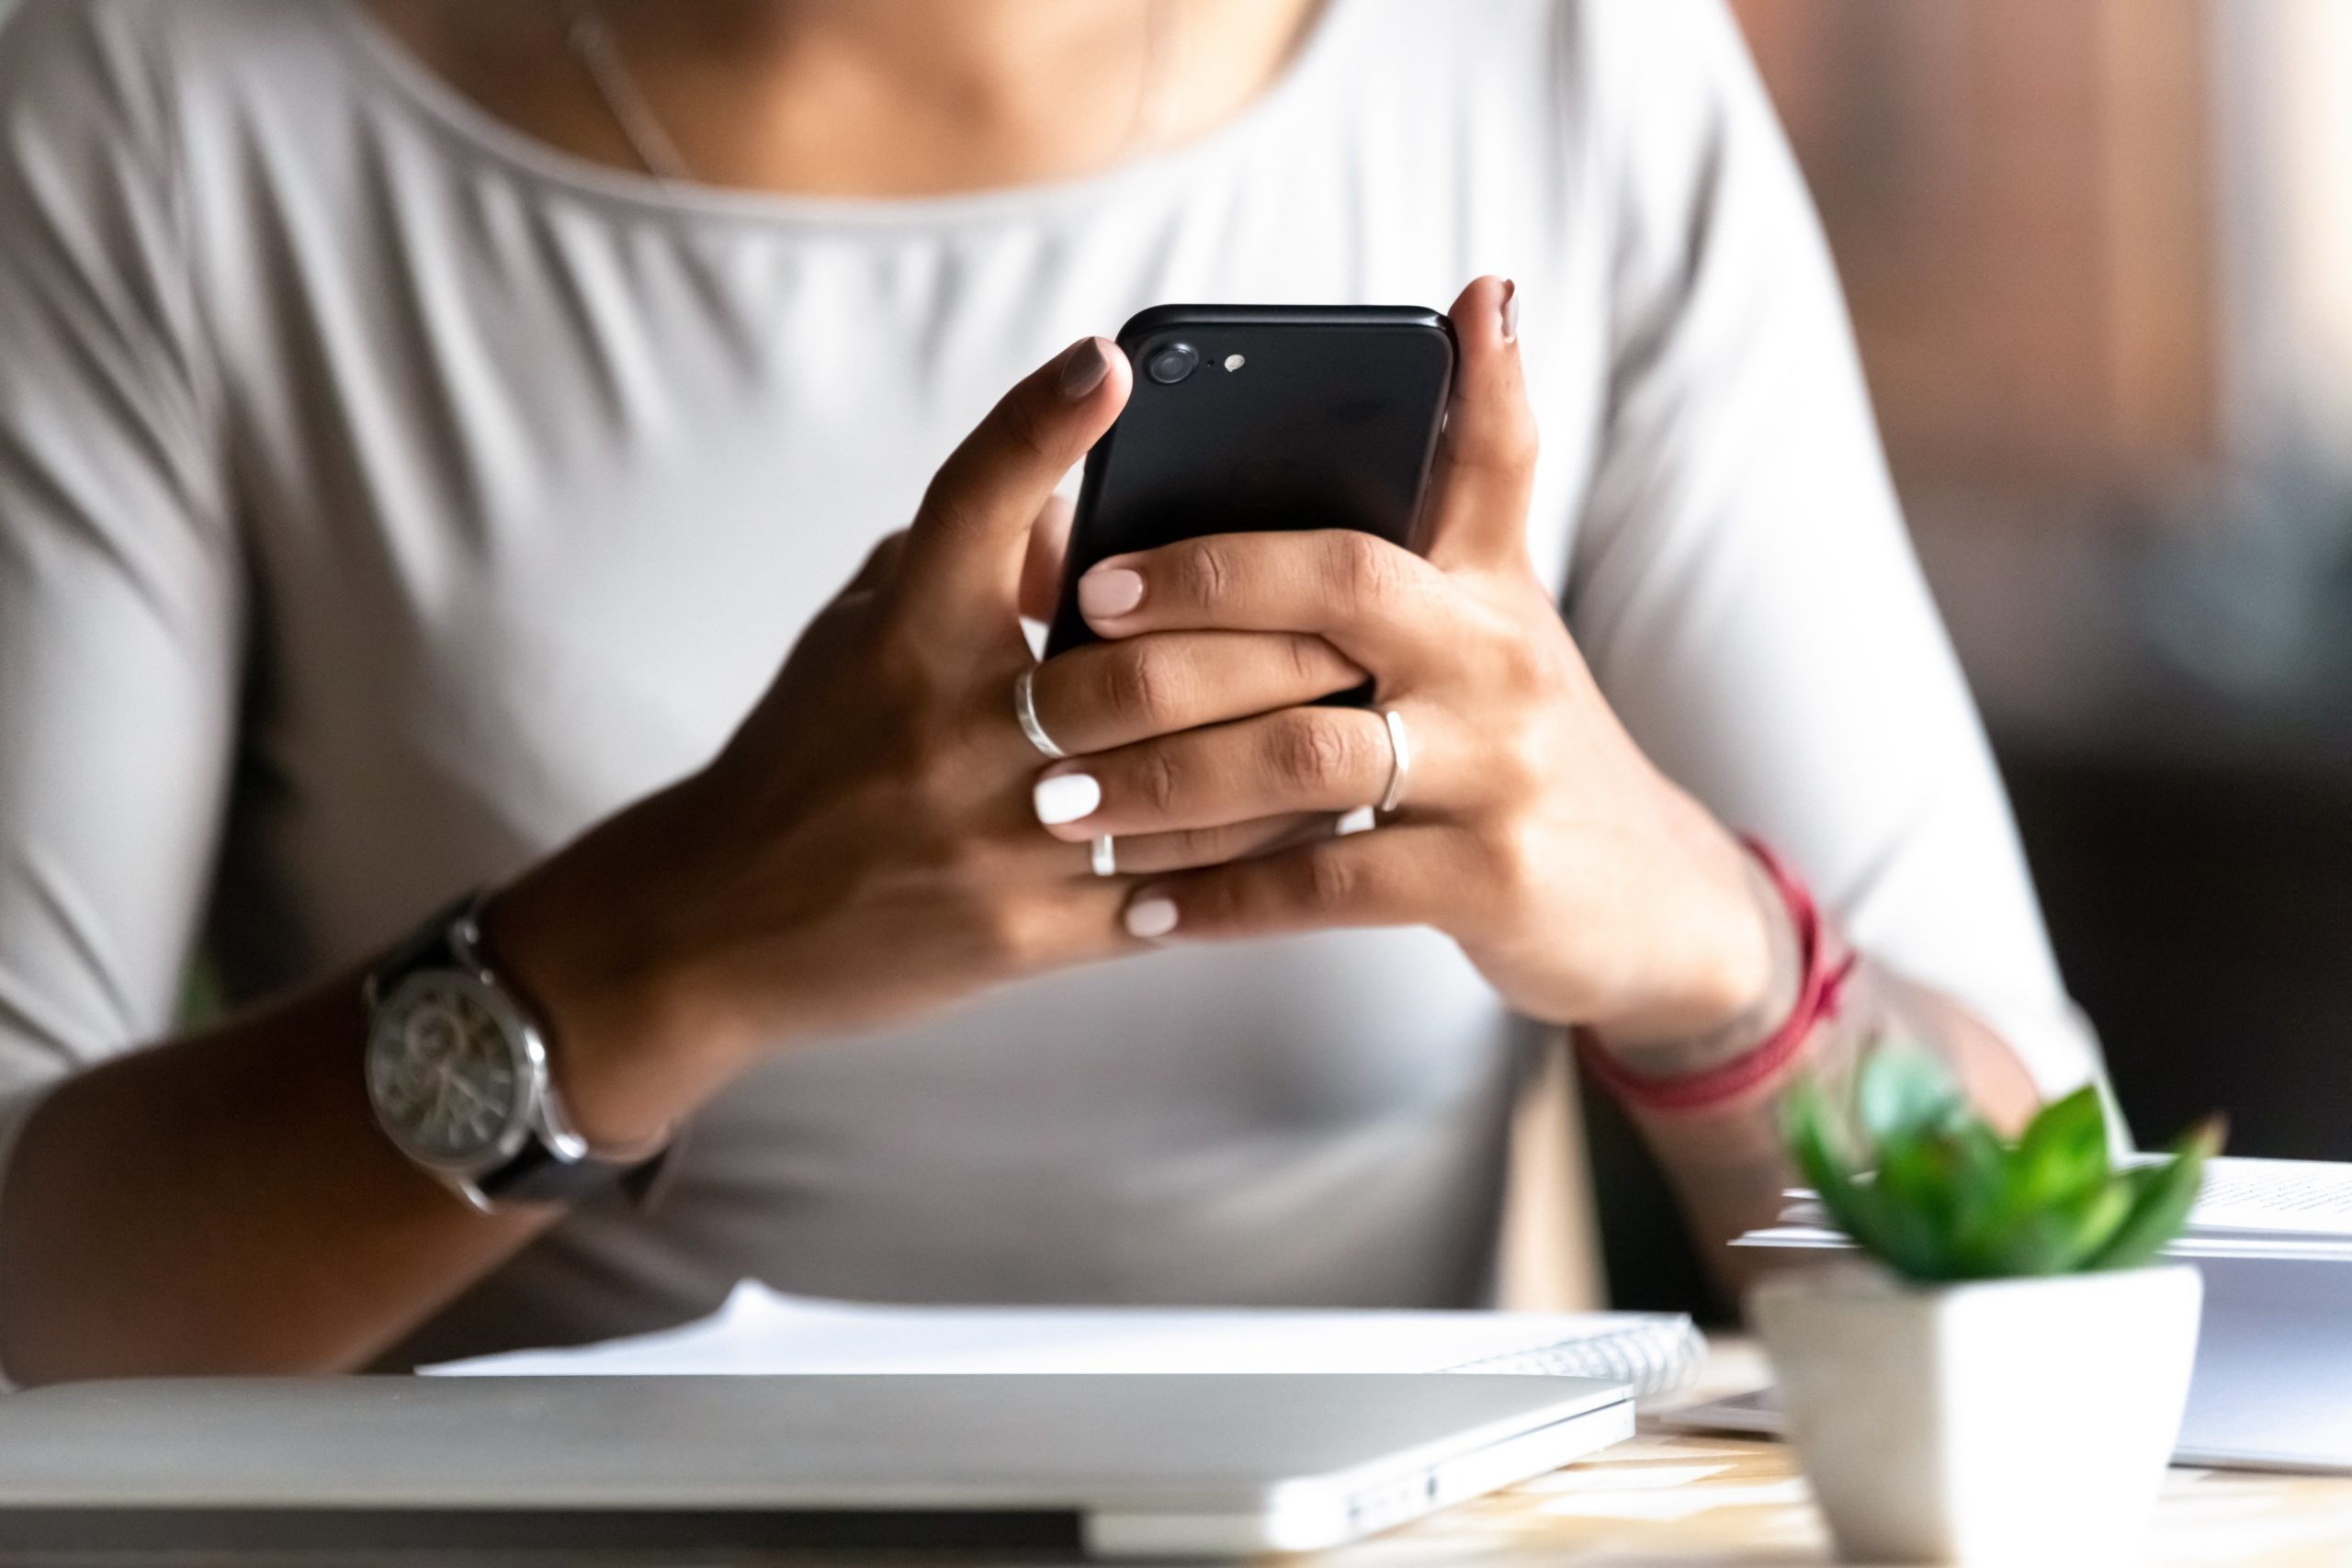 Close up woman holding smartphone, typing message, texting, chatting, female hands using cellphone, browsing mobile apps, internet, checking social networks, email, playing games on phone